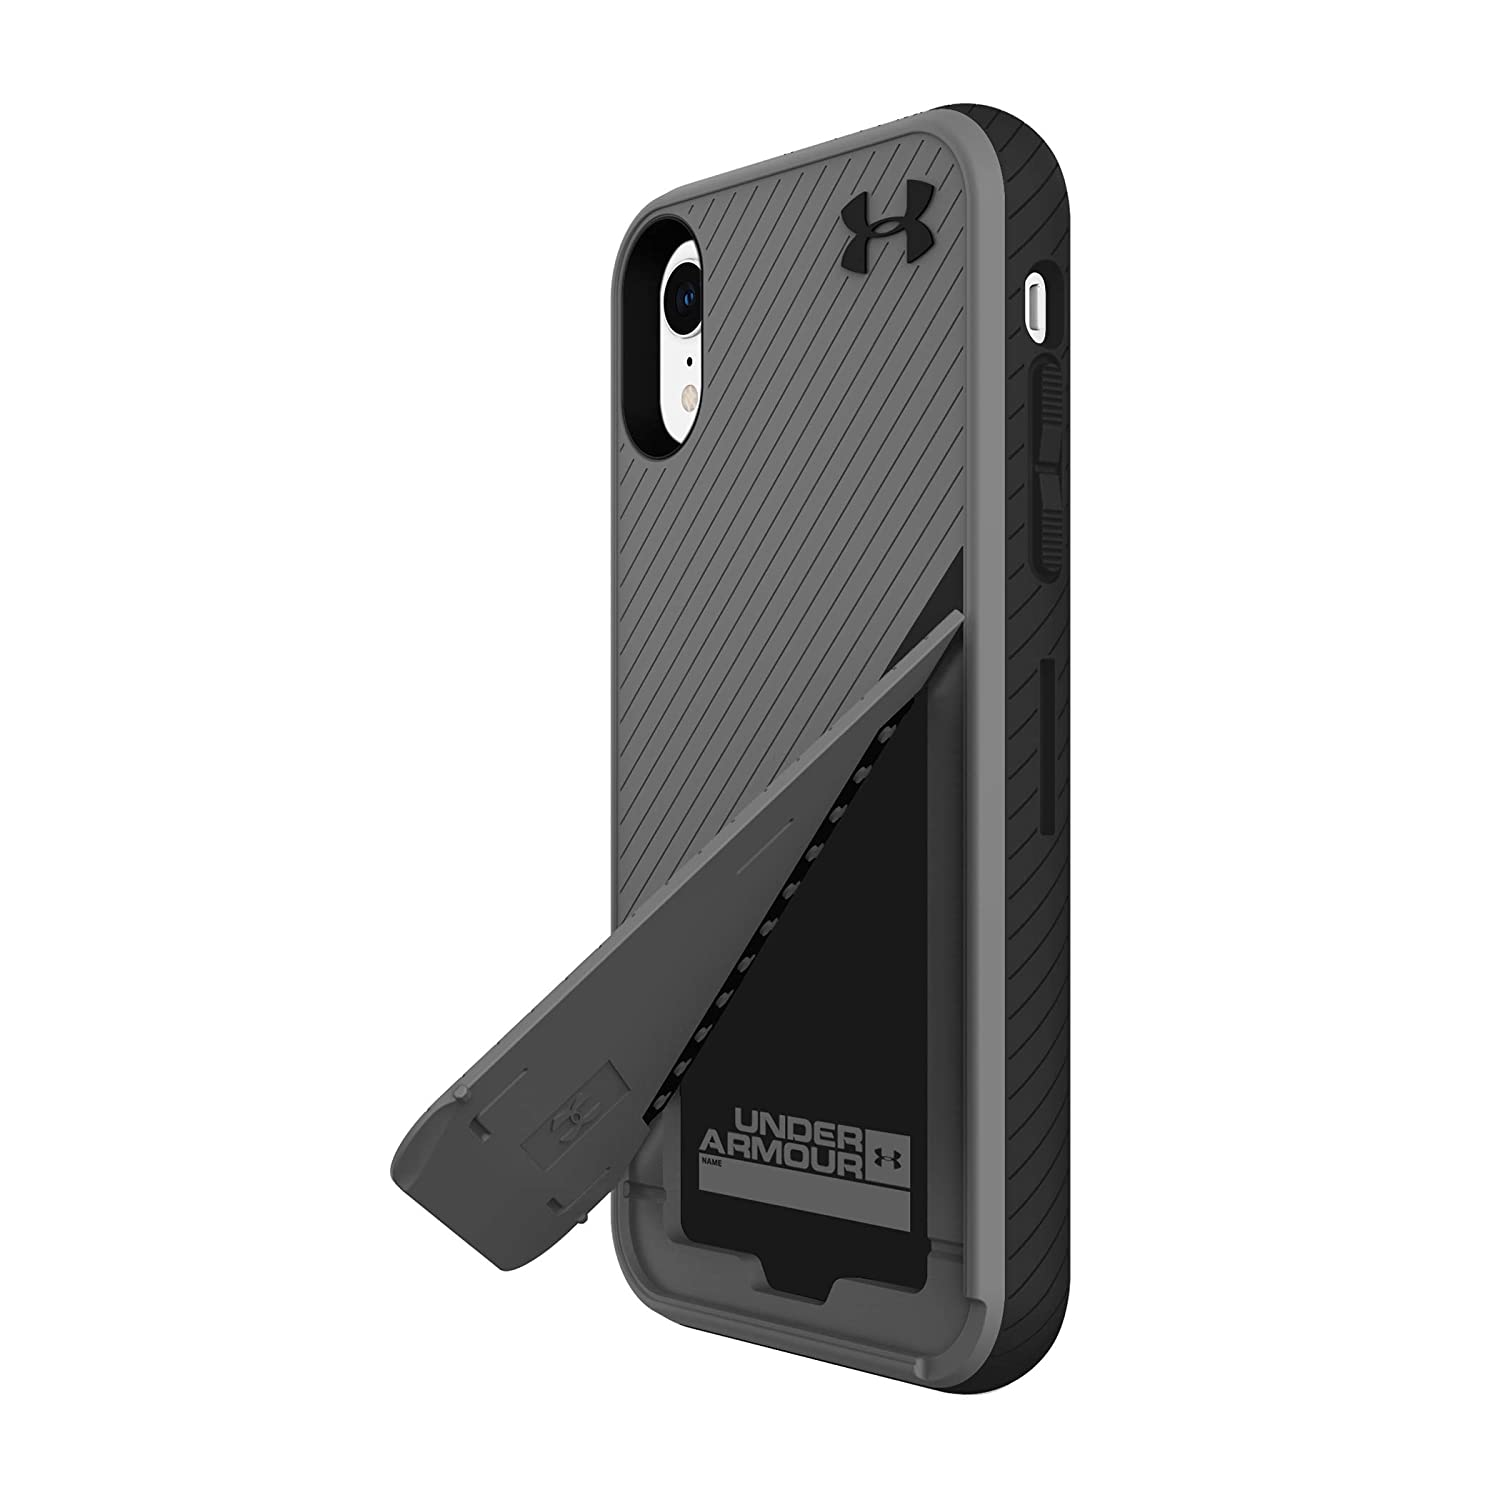 reputable site 65e74 8aaaa Under Armour Phone Case | for Apple iPhone XR | Under Armour UA Protect  Kickstash Case with Rugged Design and Drop Protection - Graphite/Black